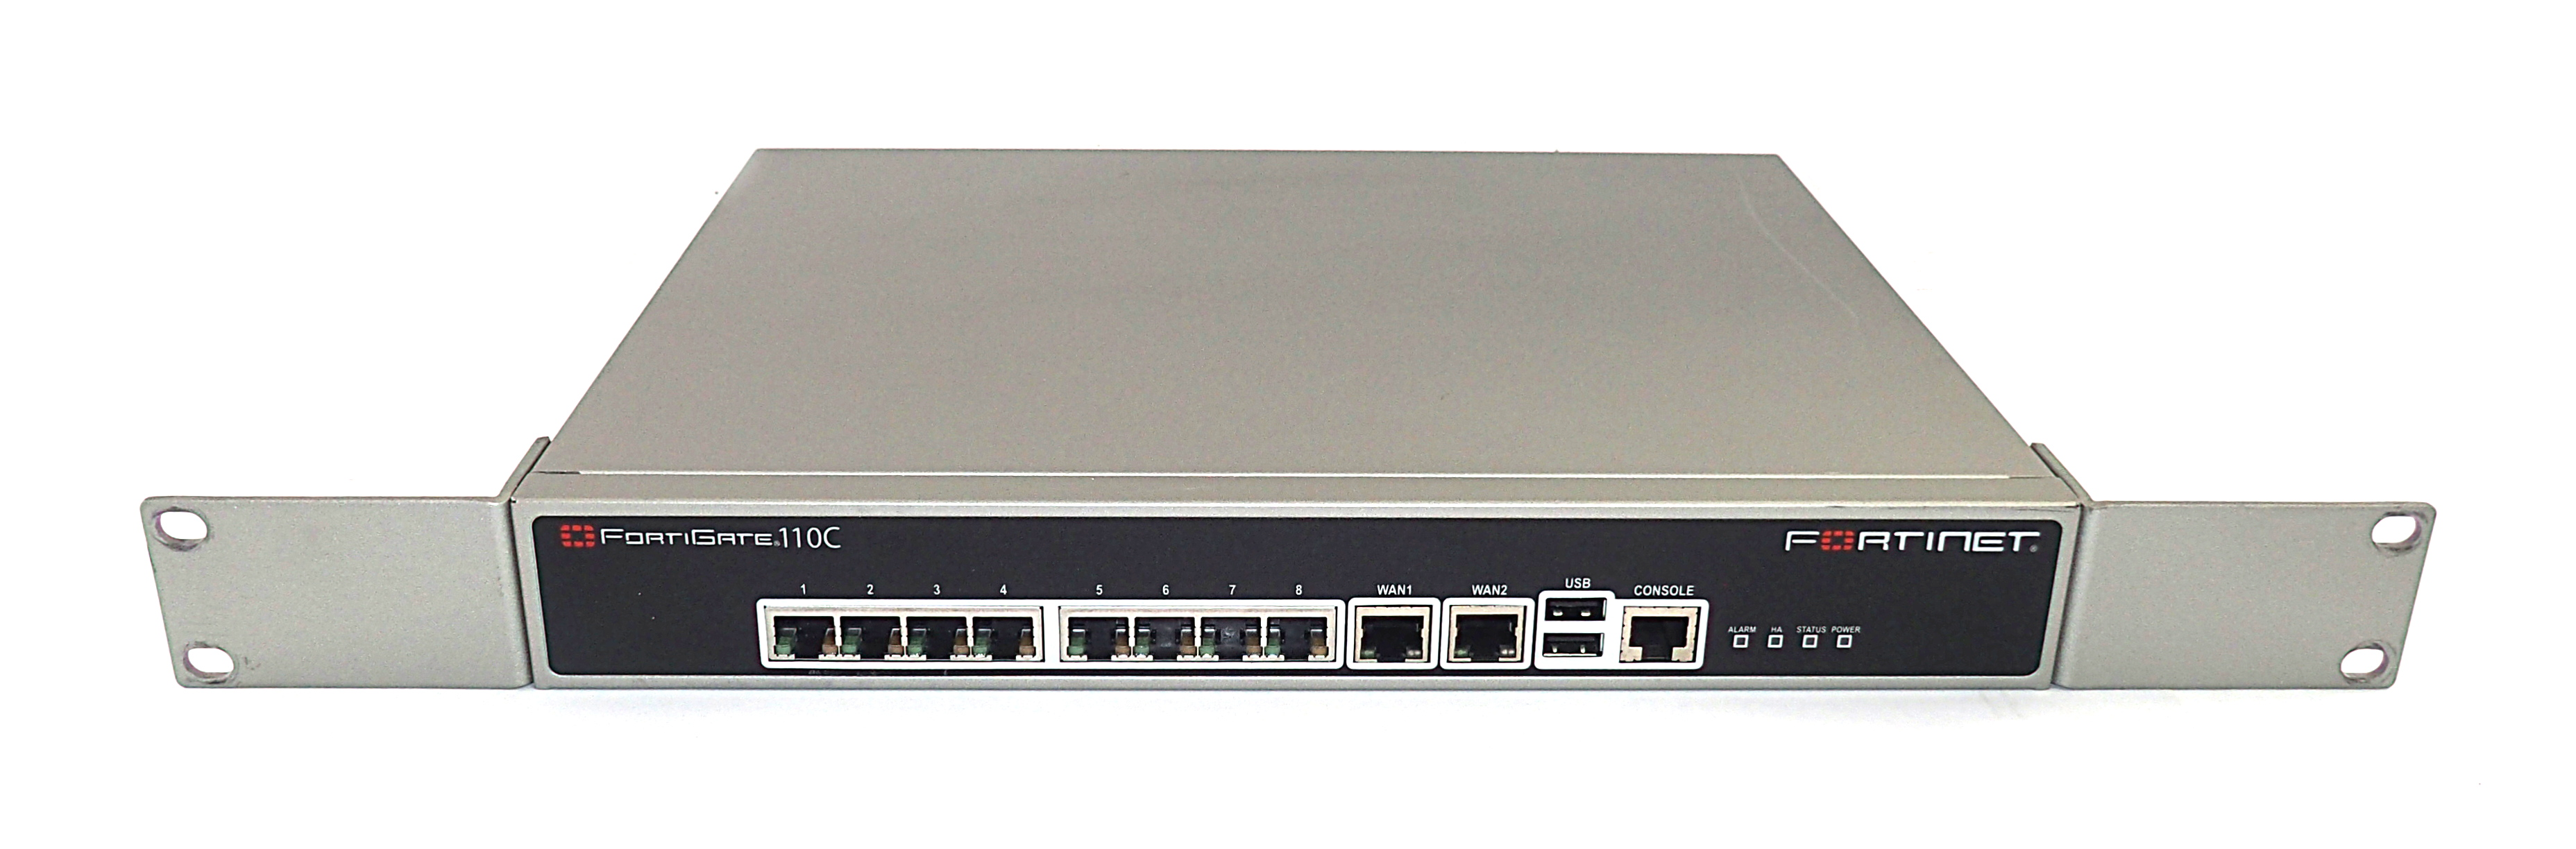 Fortinet FG-110C Fortigate-110C Network Security Appliance - PN:P04551-07-01